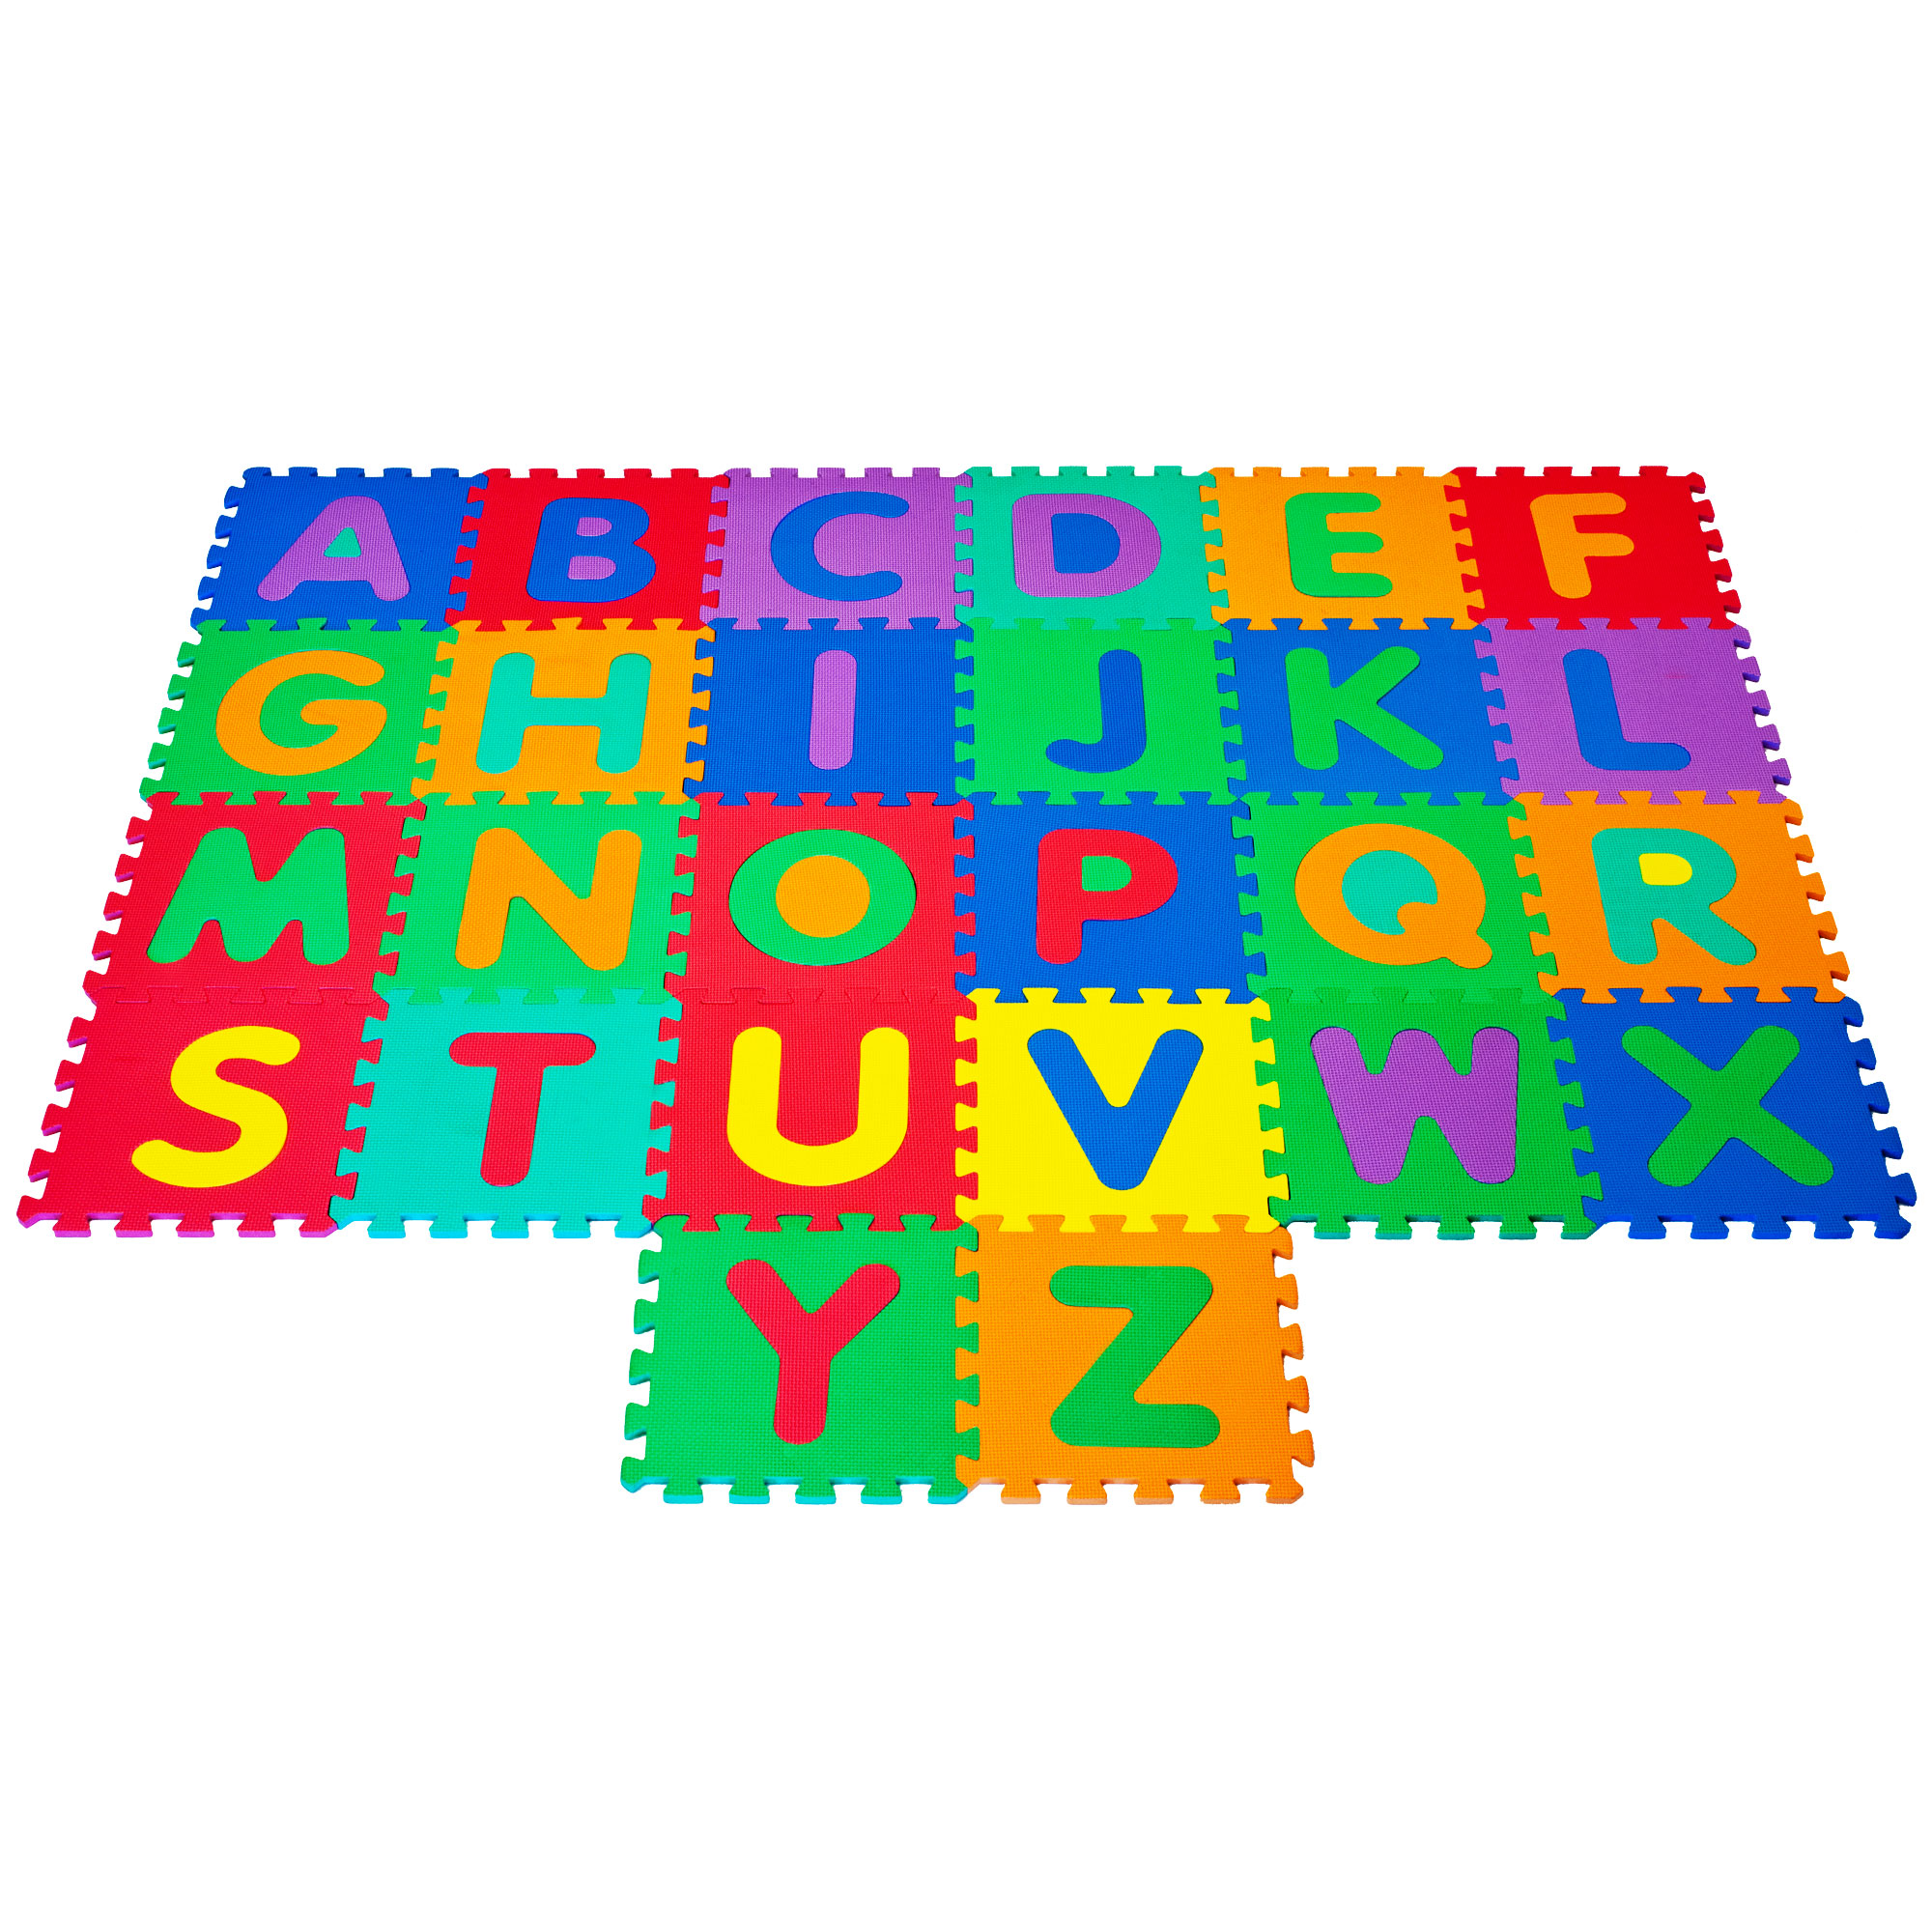 Interlocking Foam Tile Play Mat with Letters - Nontoxic Children's Multicolor Puzzle Tiles for Playrooms, Nurseries, Classrooms and More by Hey! Play!